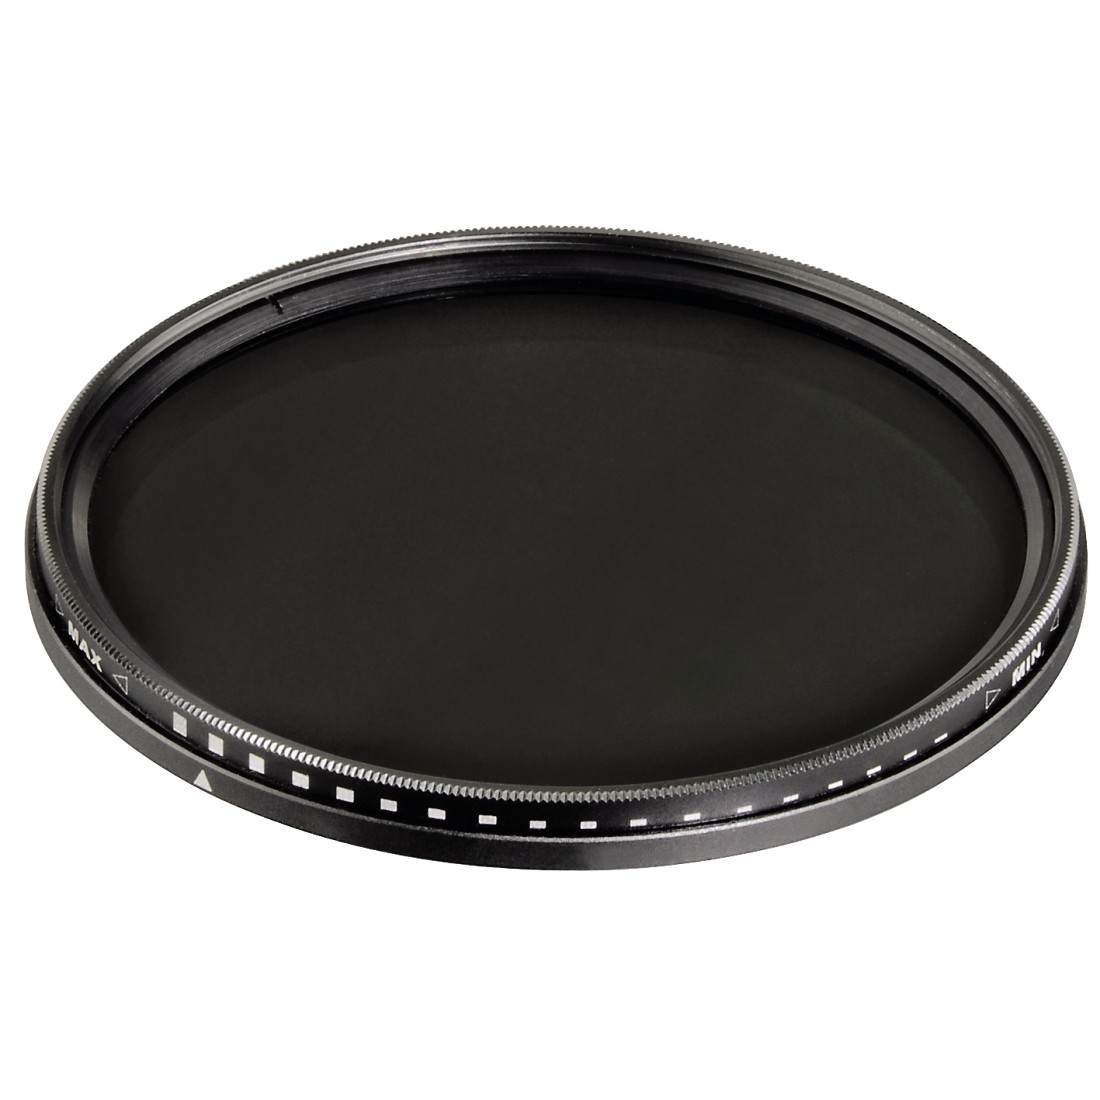 abx High-Res Image - Hama, Vario ND2-400 Neutral-Density Filter, coated, 72.0 mm